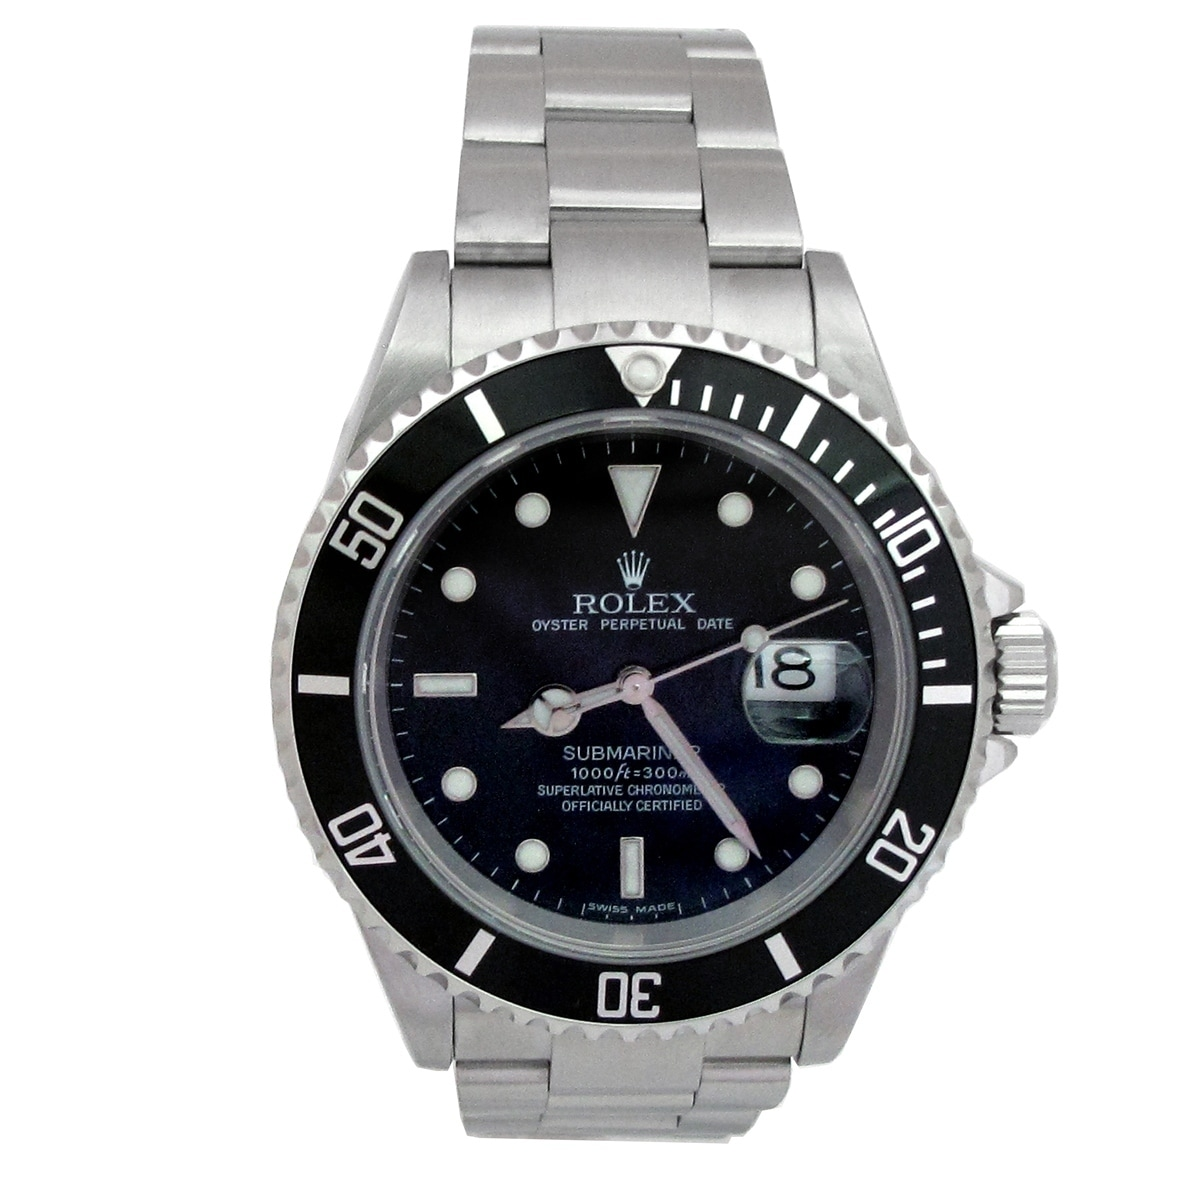 Used Pre-Owned Rolex Men's Submariner Stainless Steel Bla...